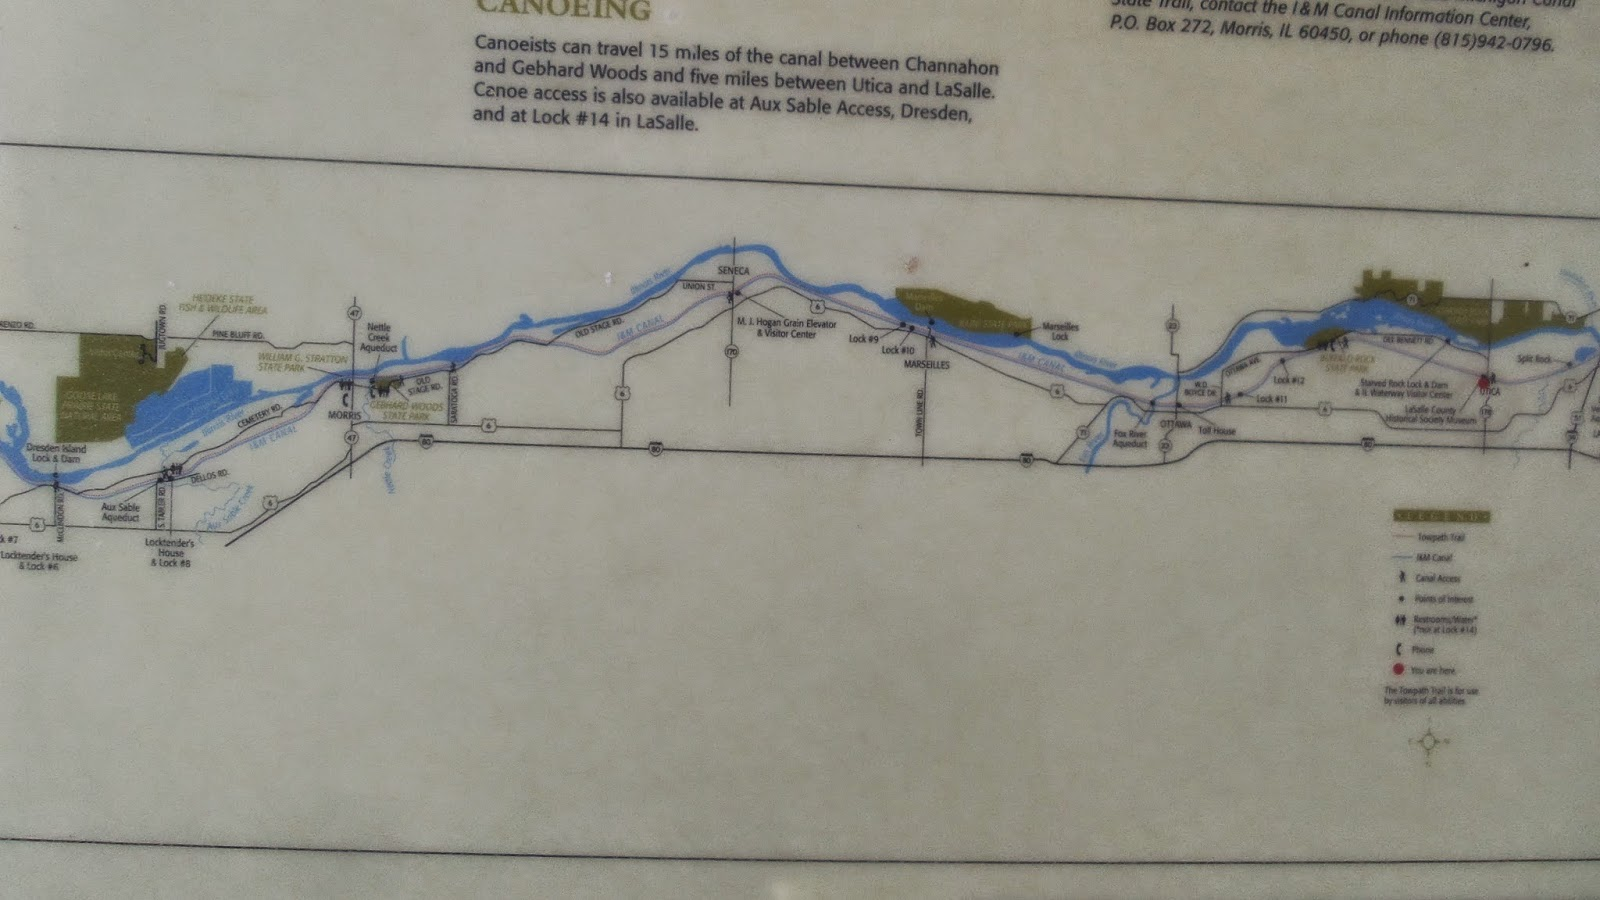 there is also a map of the canal there